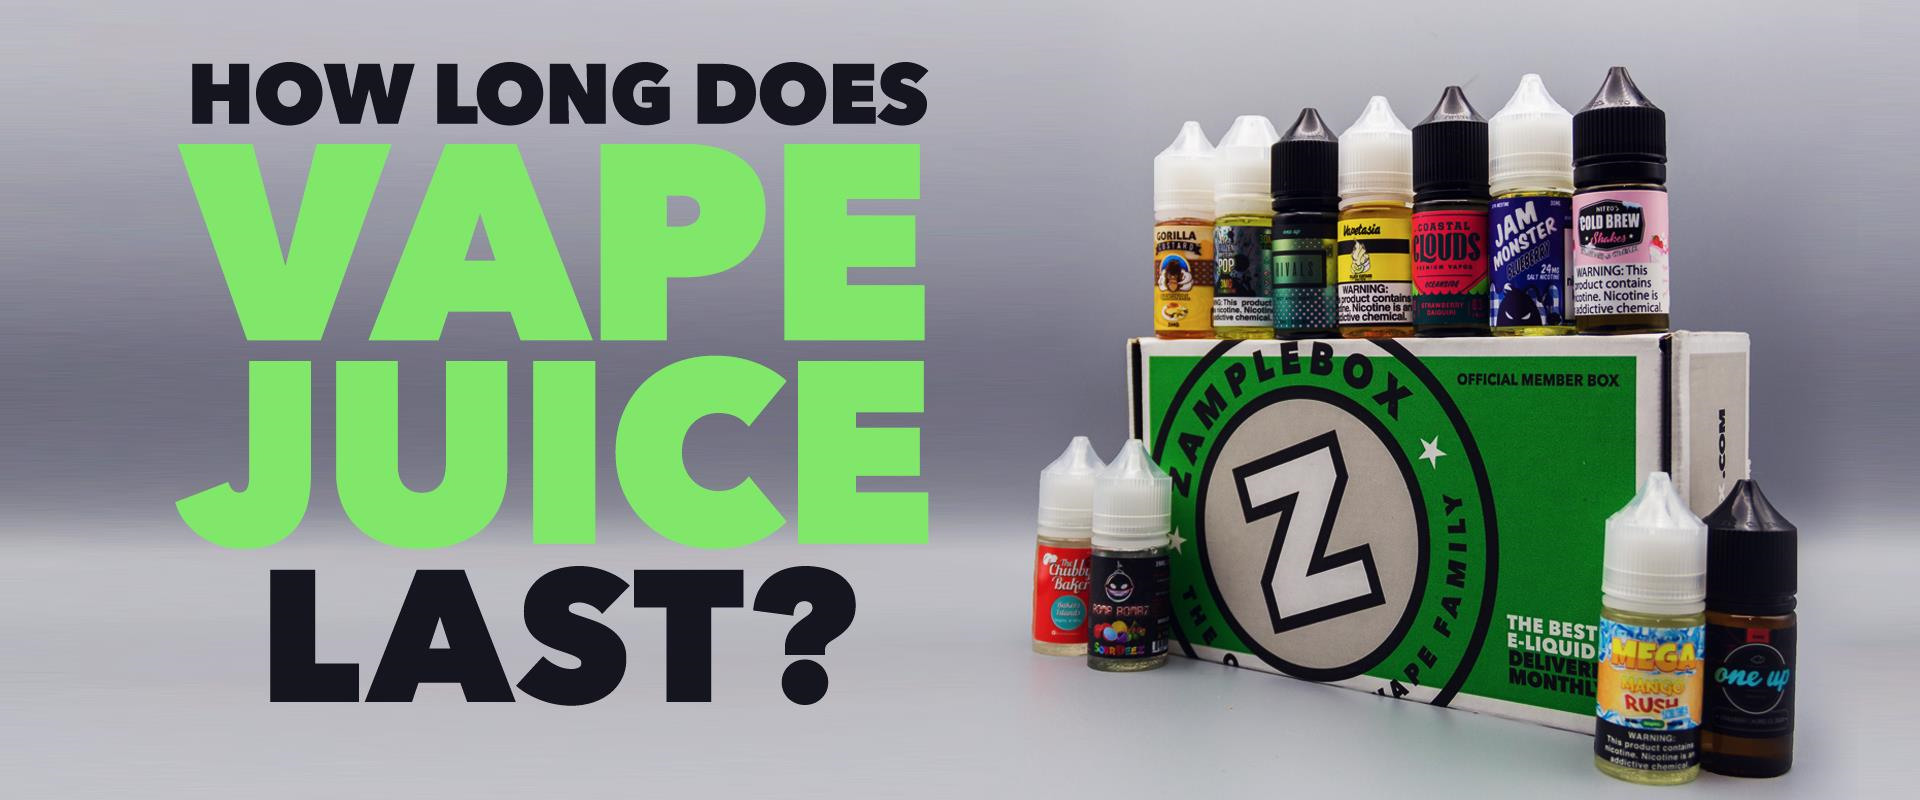 Do E-liquids Have An Expiration Date? An In-Depth Discussion